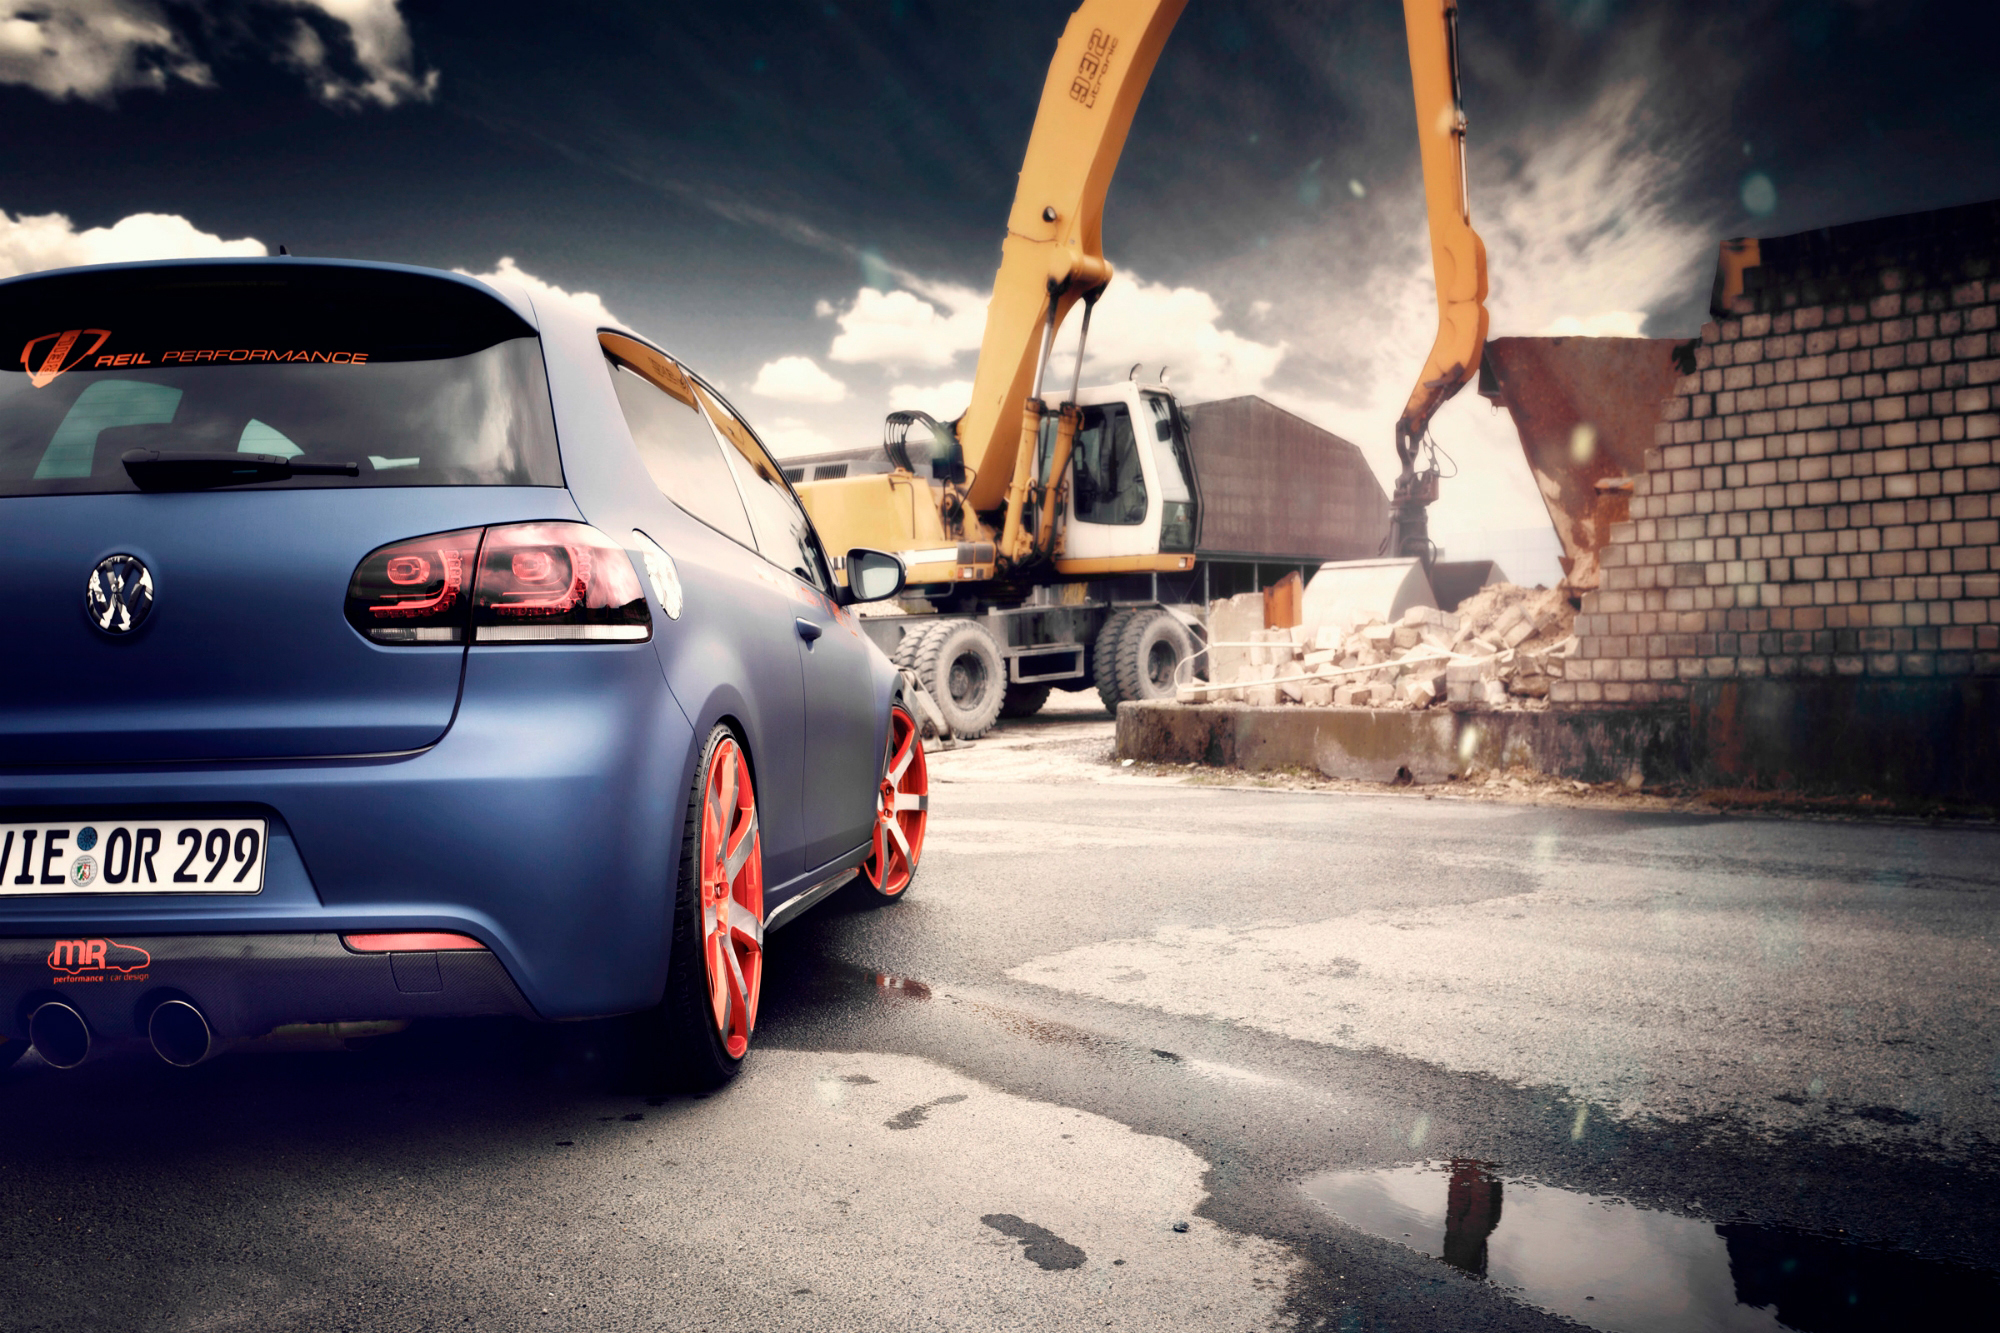 1080p Car Wallpaper Pack Volkswagen Golf Wallpapers High Quality Download Free